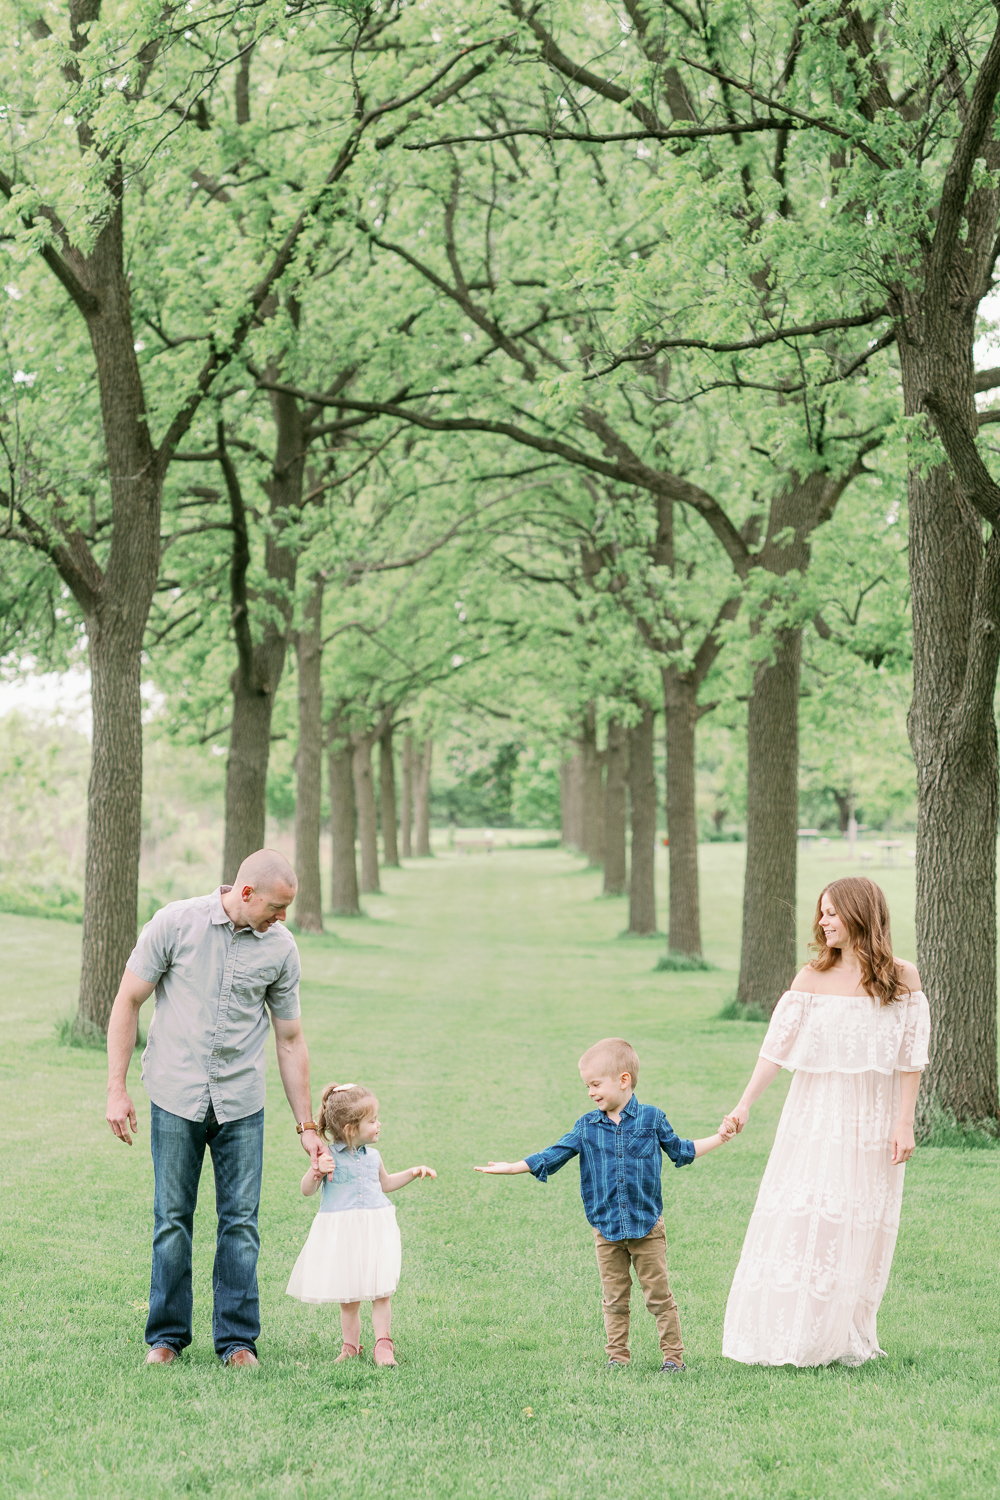 Chicago Naples Lifestyle Family Photographer – St James Farm Family Photos-37